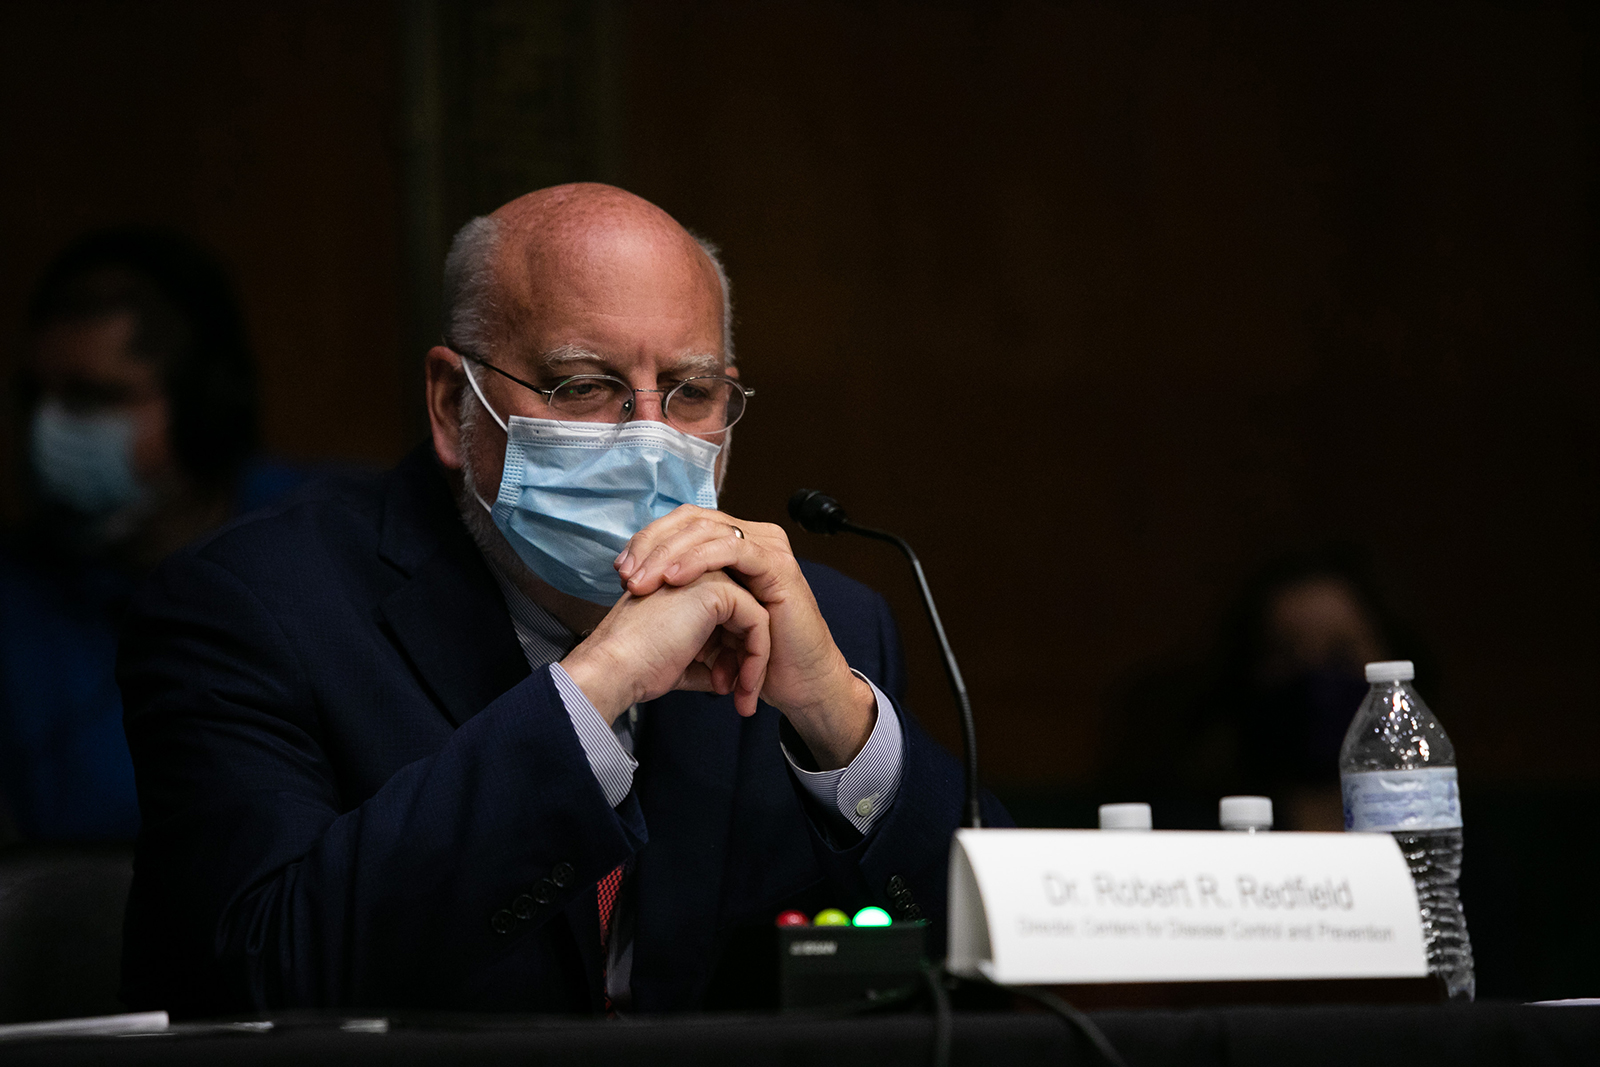 CDC Director Dr. Robert R. Redfield prepares to testify at a Senate Labor, Health and Human Services, Education and Related Agencies Subcommittee hearing on manufacturing a Coronavirus vaccine on Capitol Hill on July 2, in Washington.